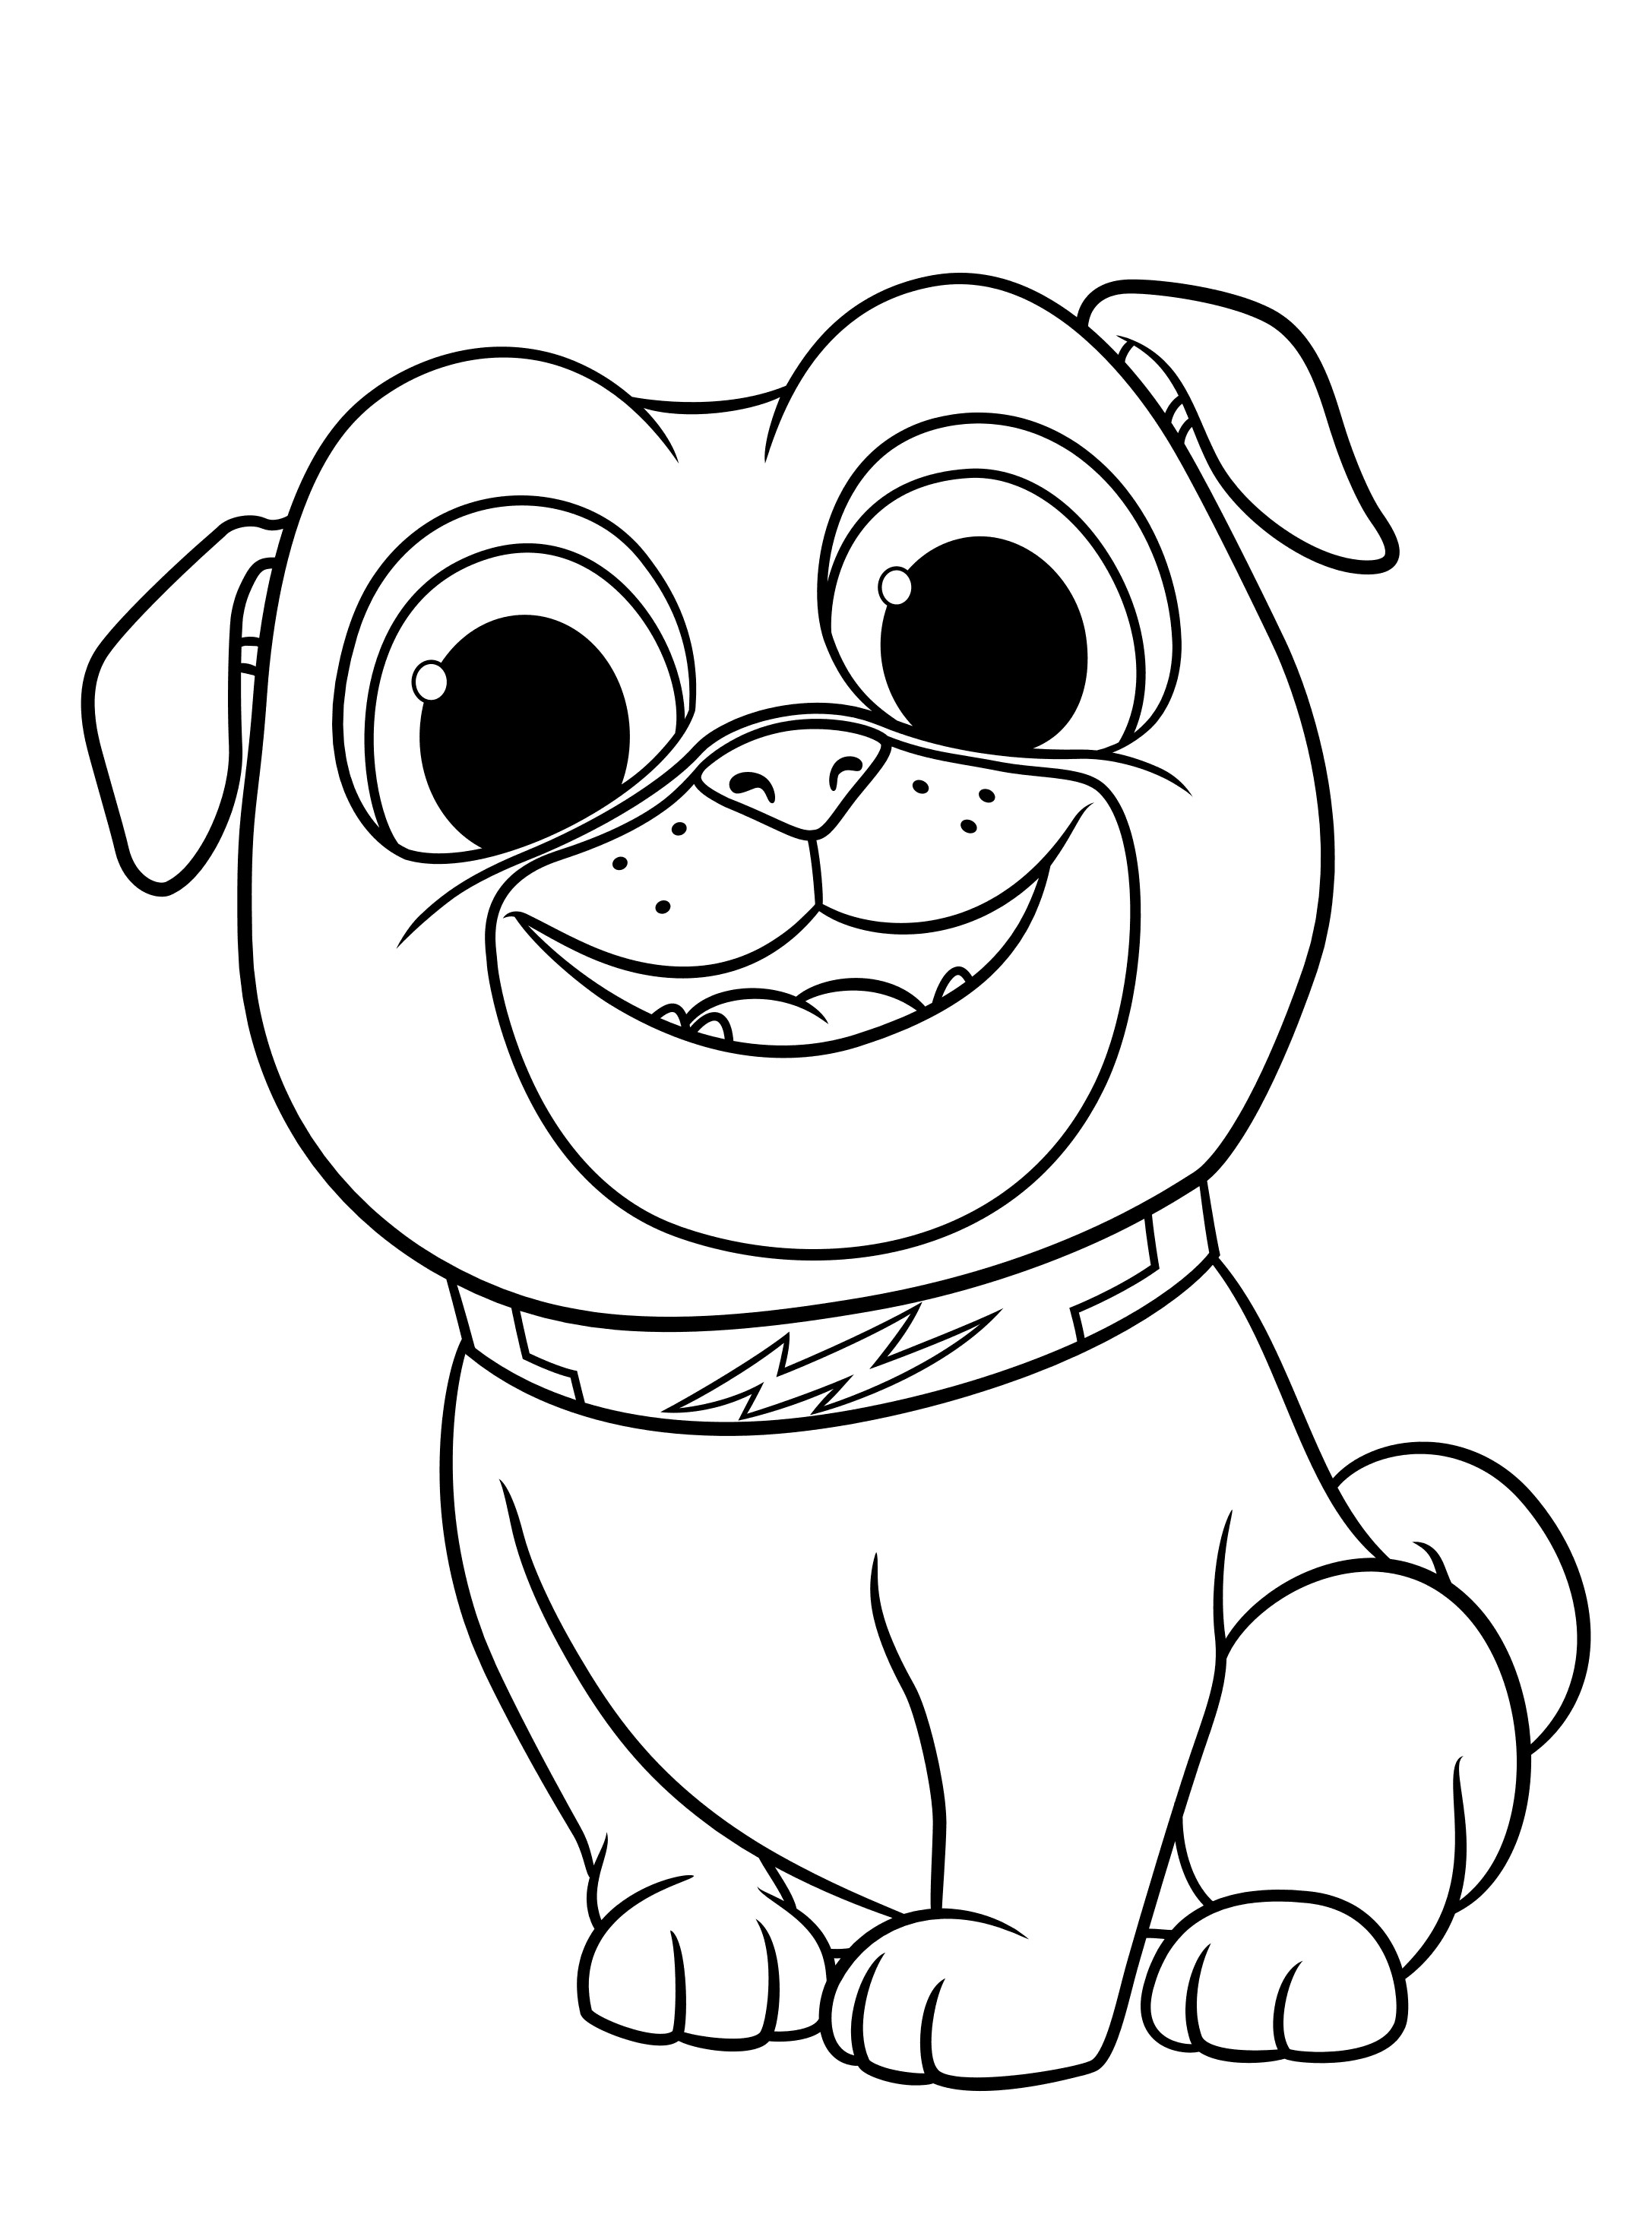 a coloring page of a dog realistic dog coloring pages dog coloring of a a page